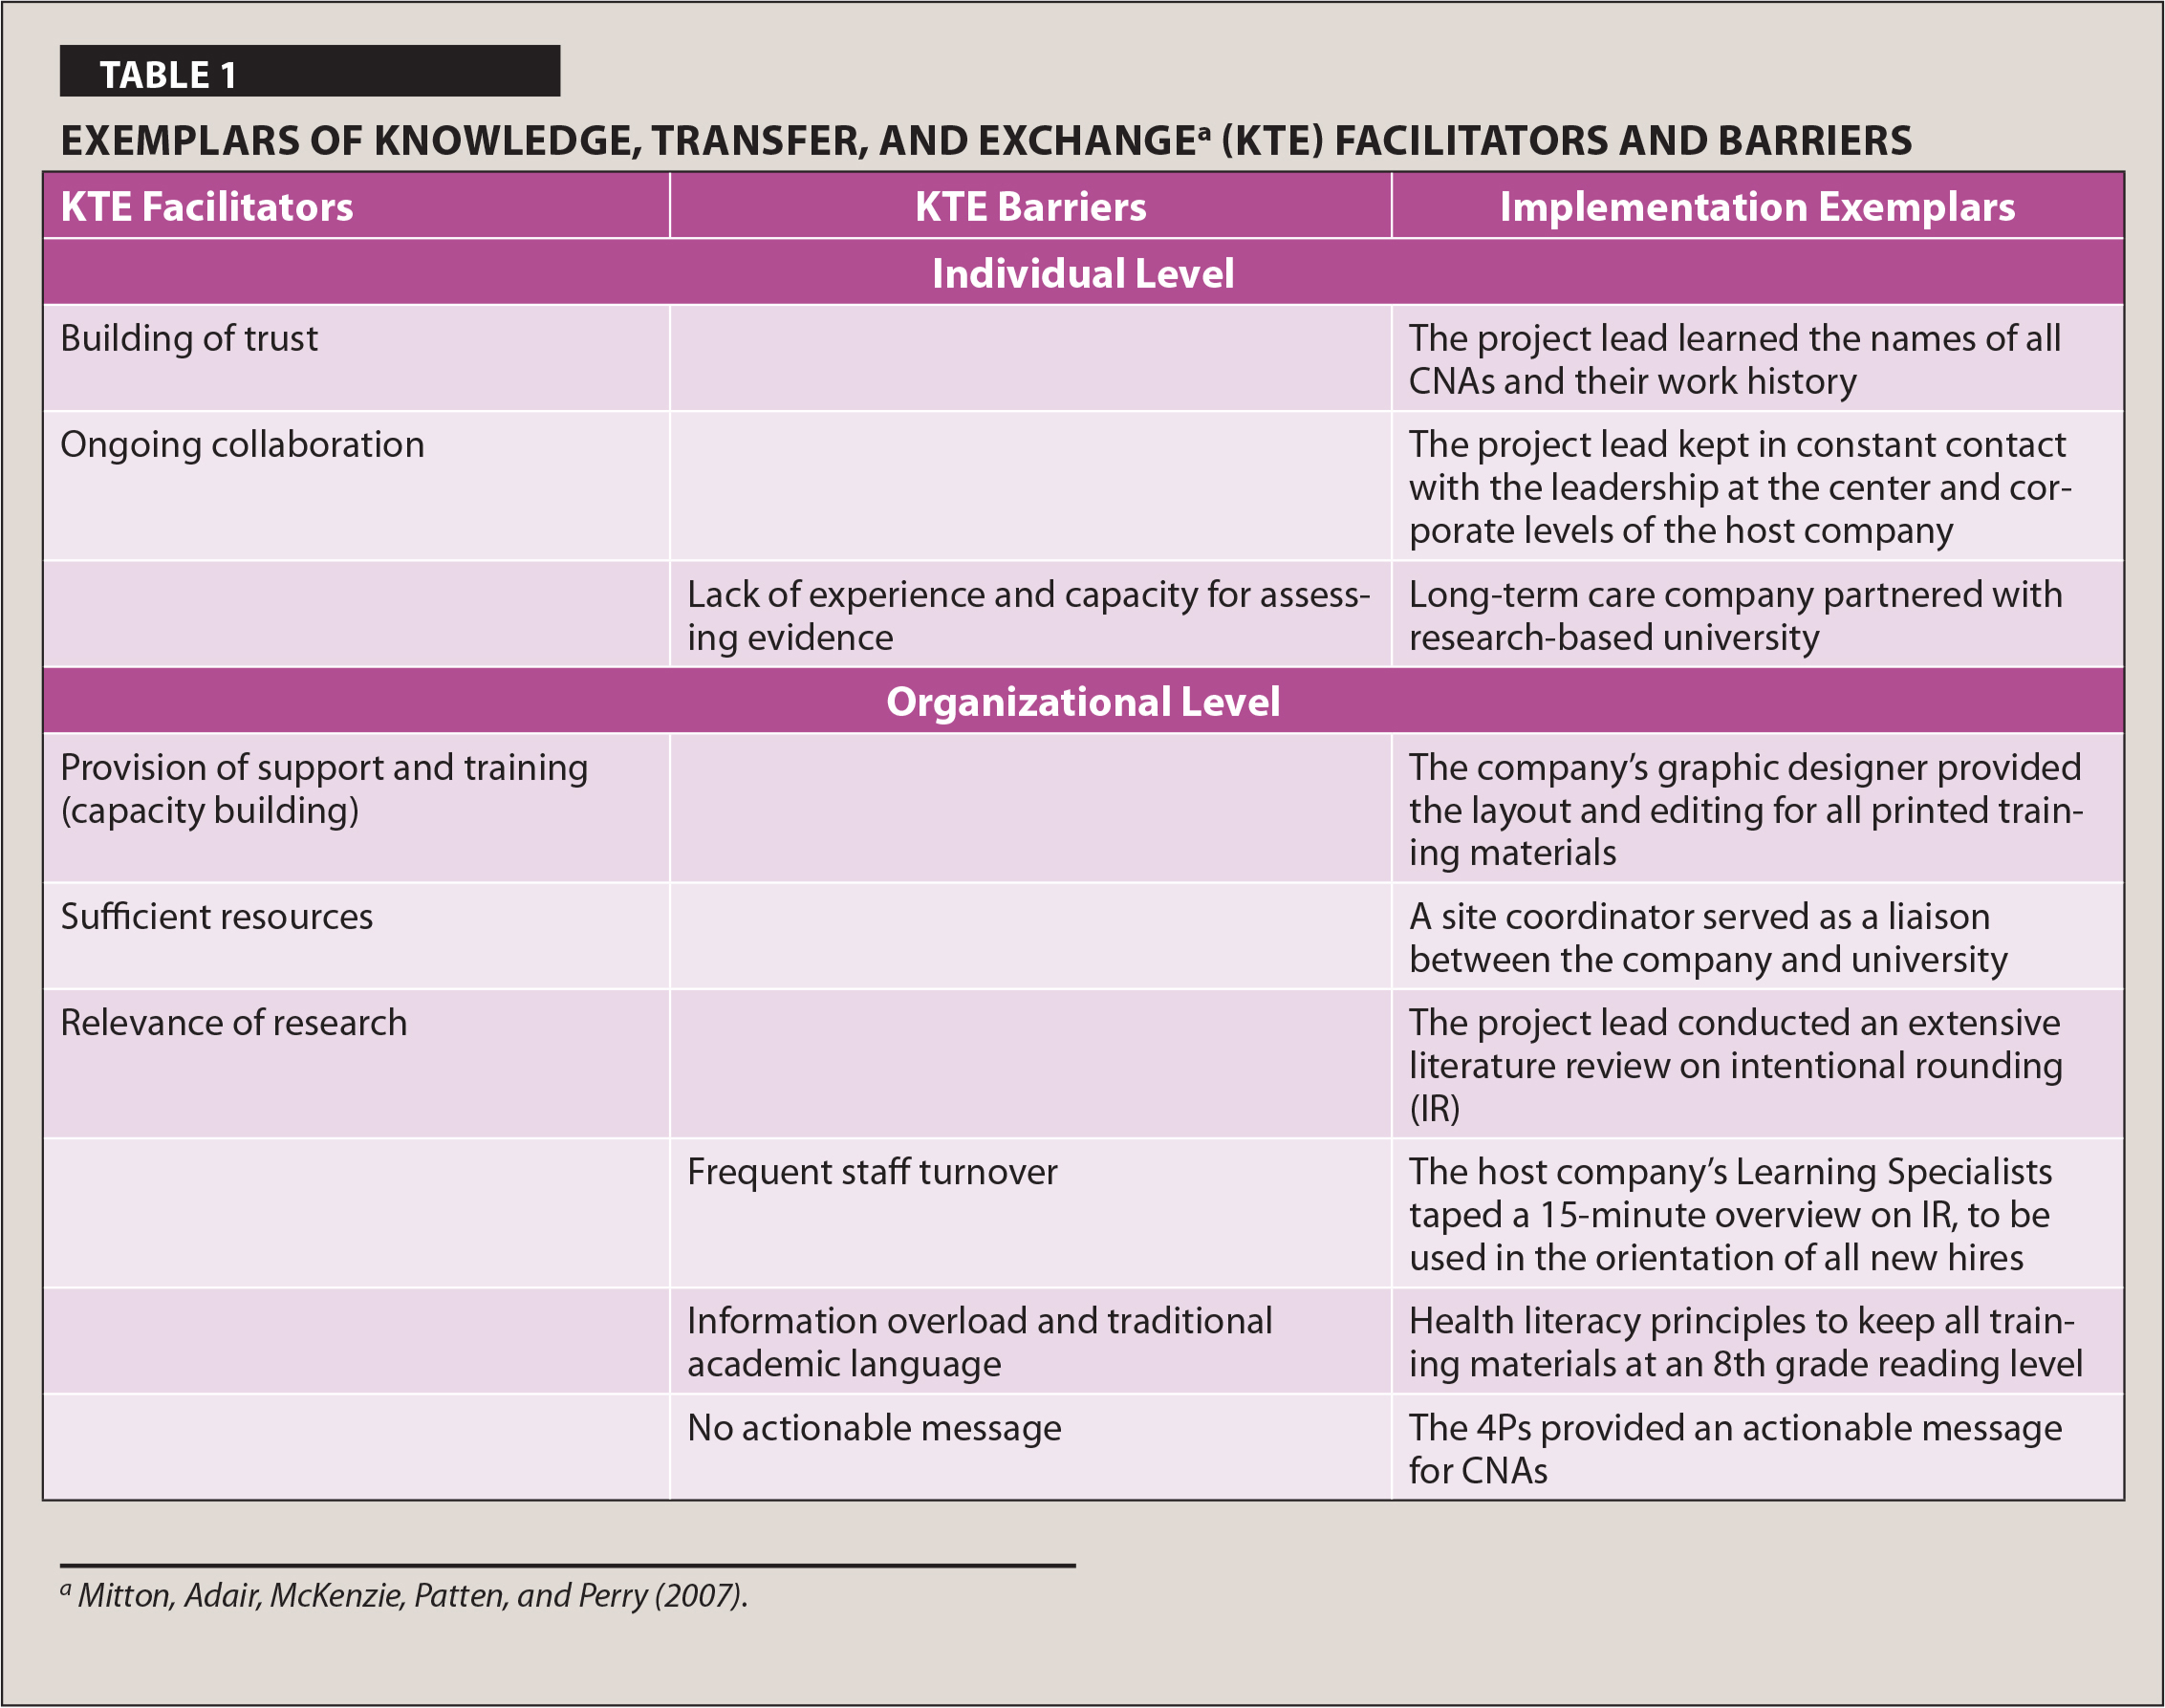 Exemplars of Knowledge, Transfer, and Exchangea (KTE) Facilitators and Barriers